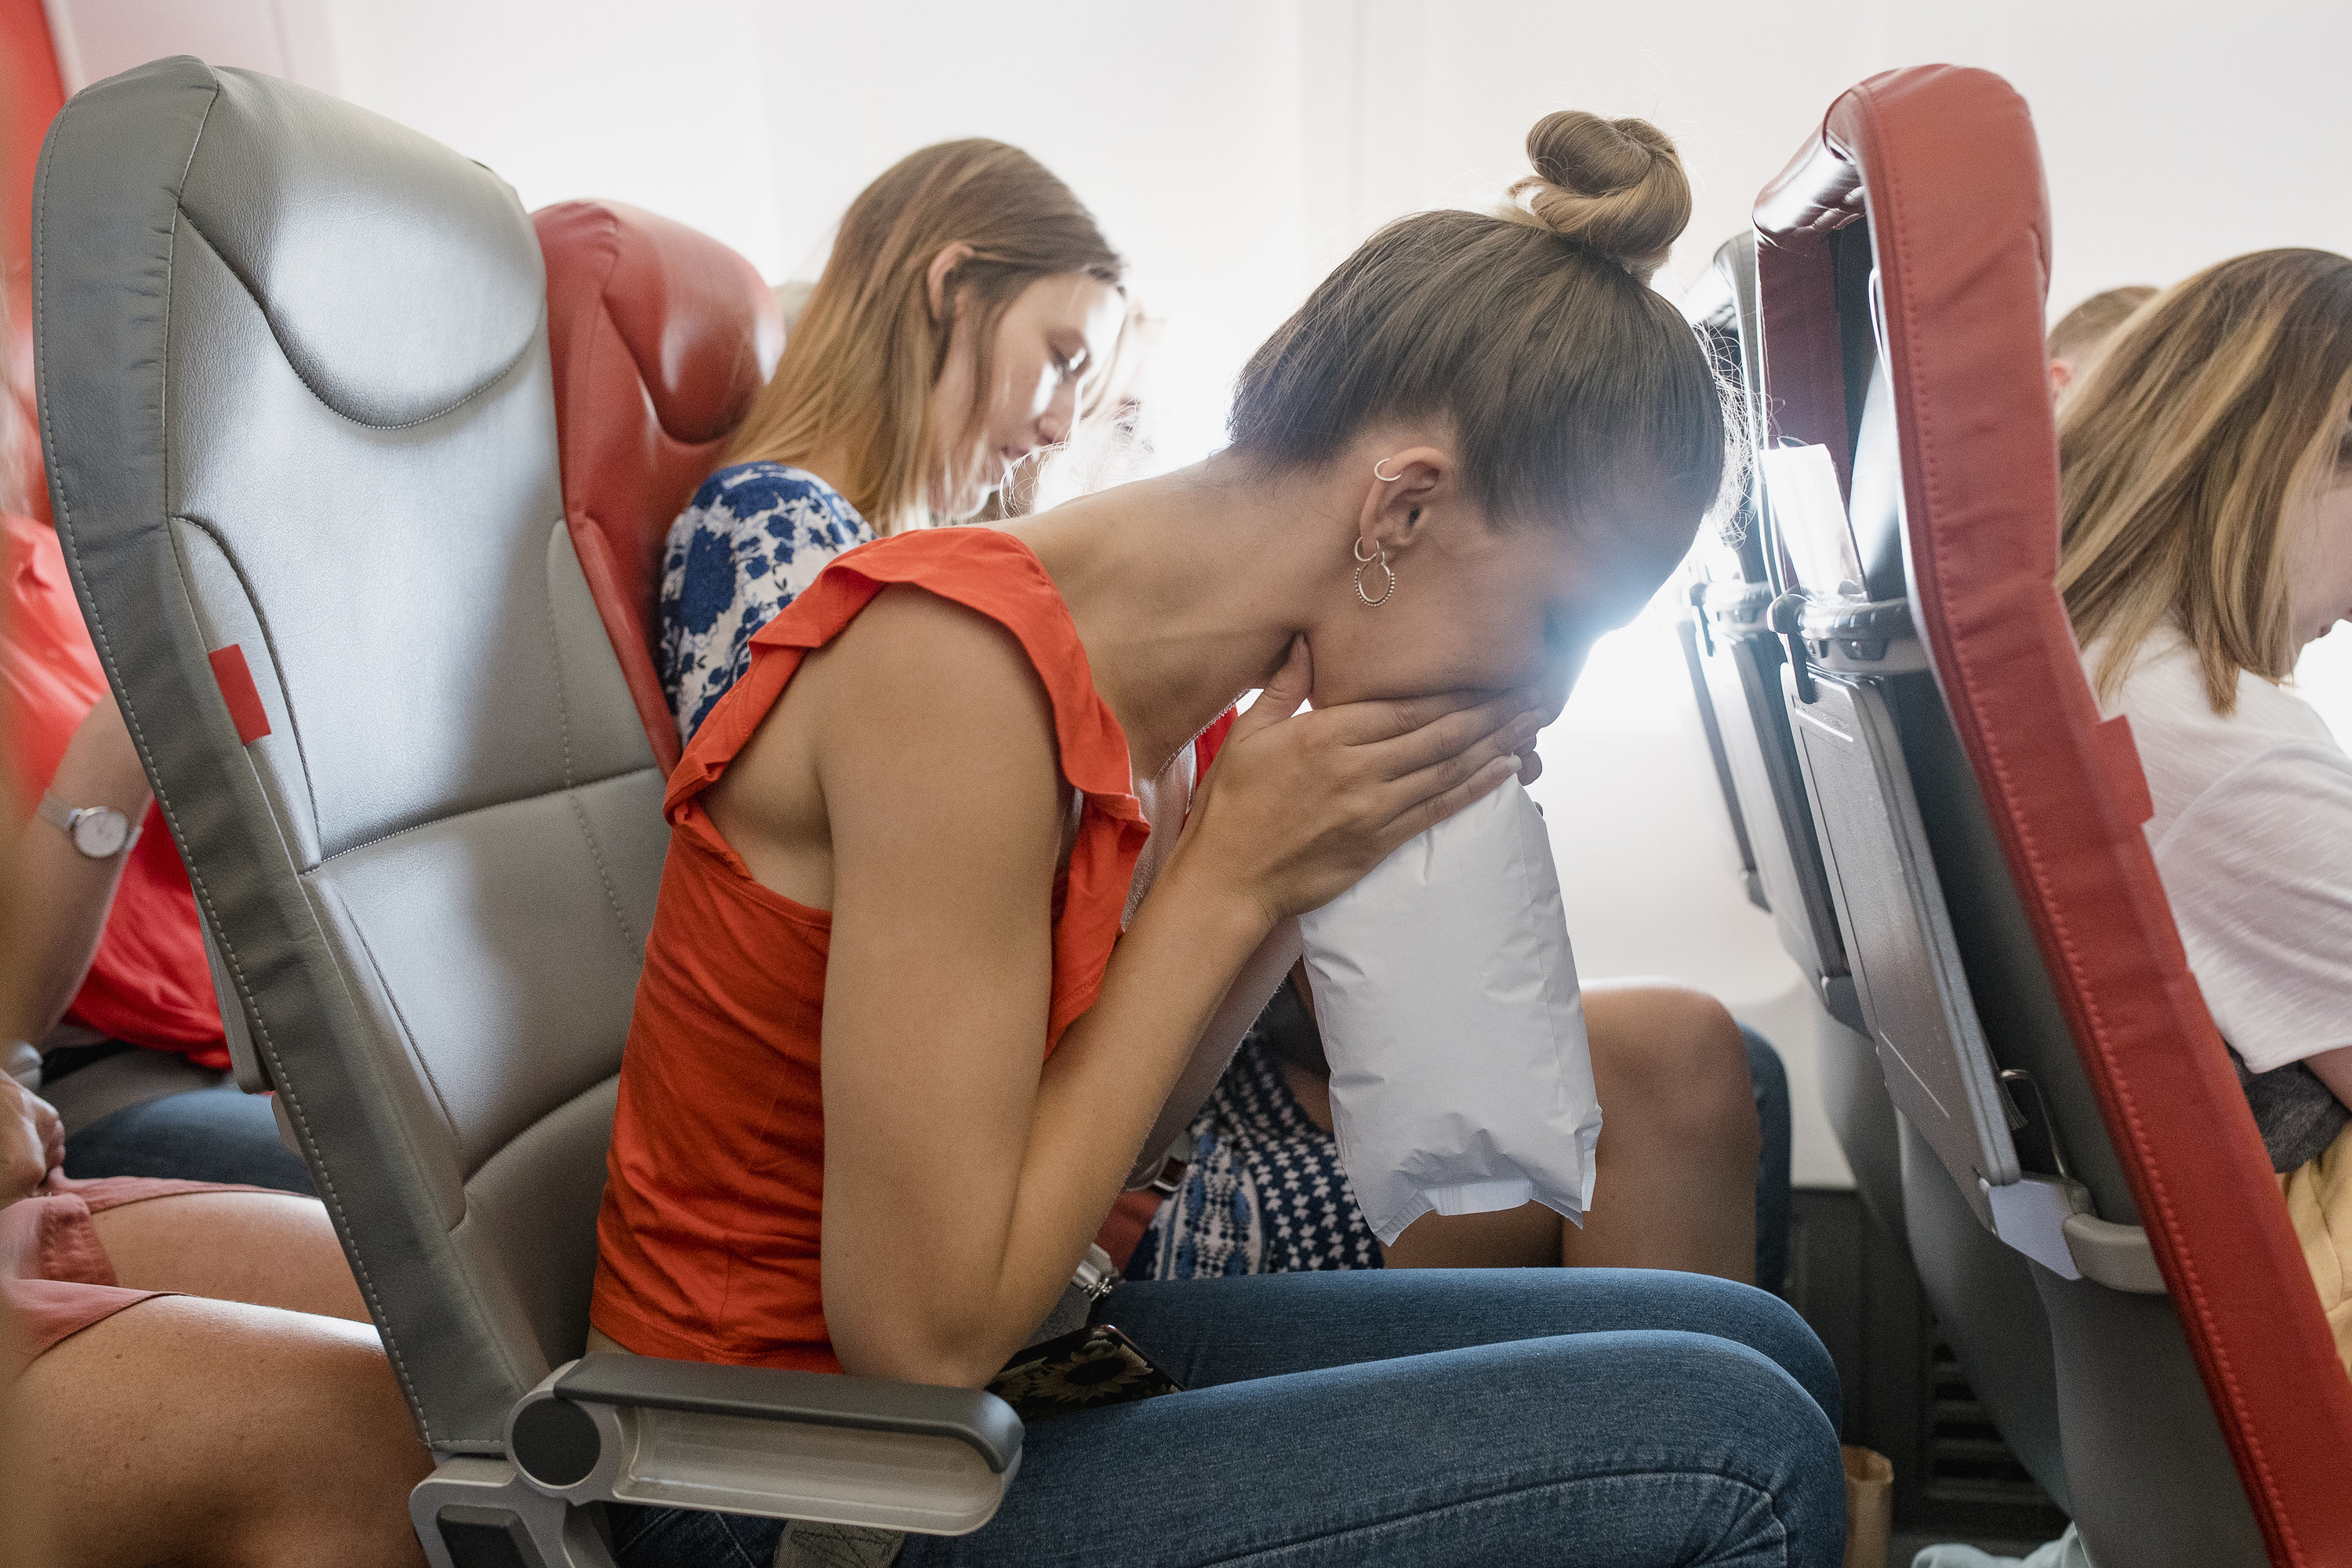 Young woman breathing into a vomit bag while seated in economy class seat